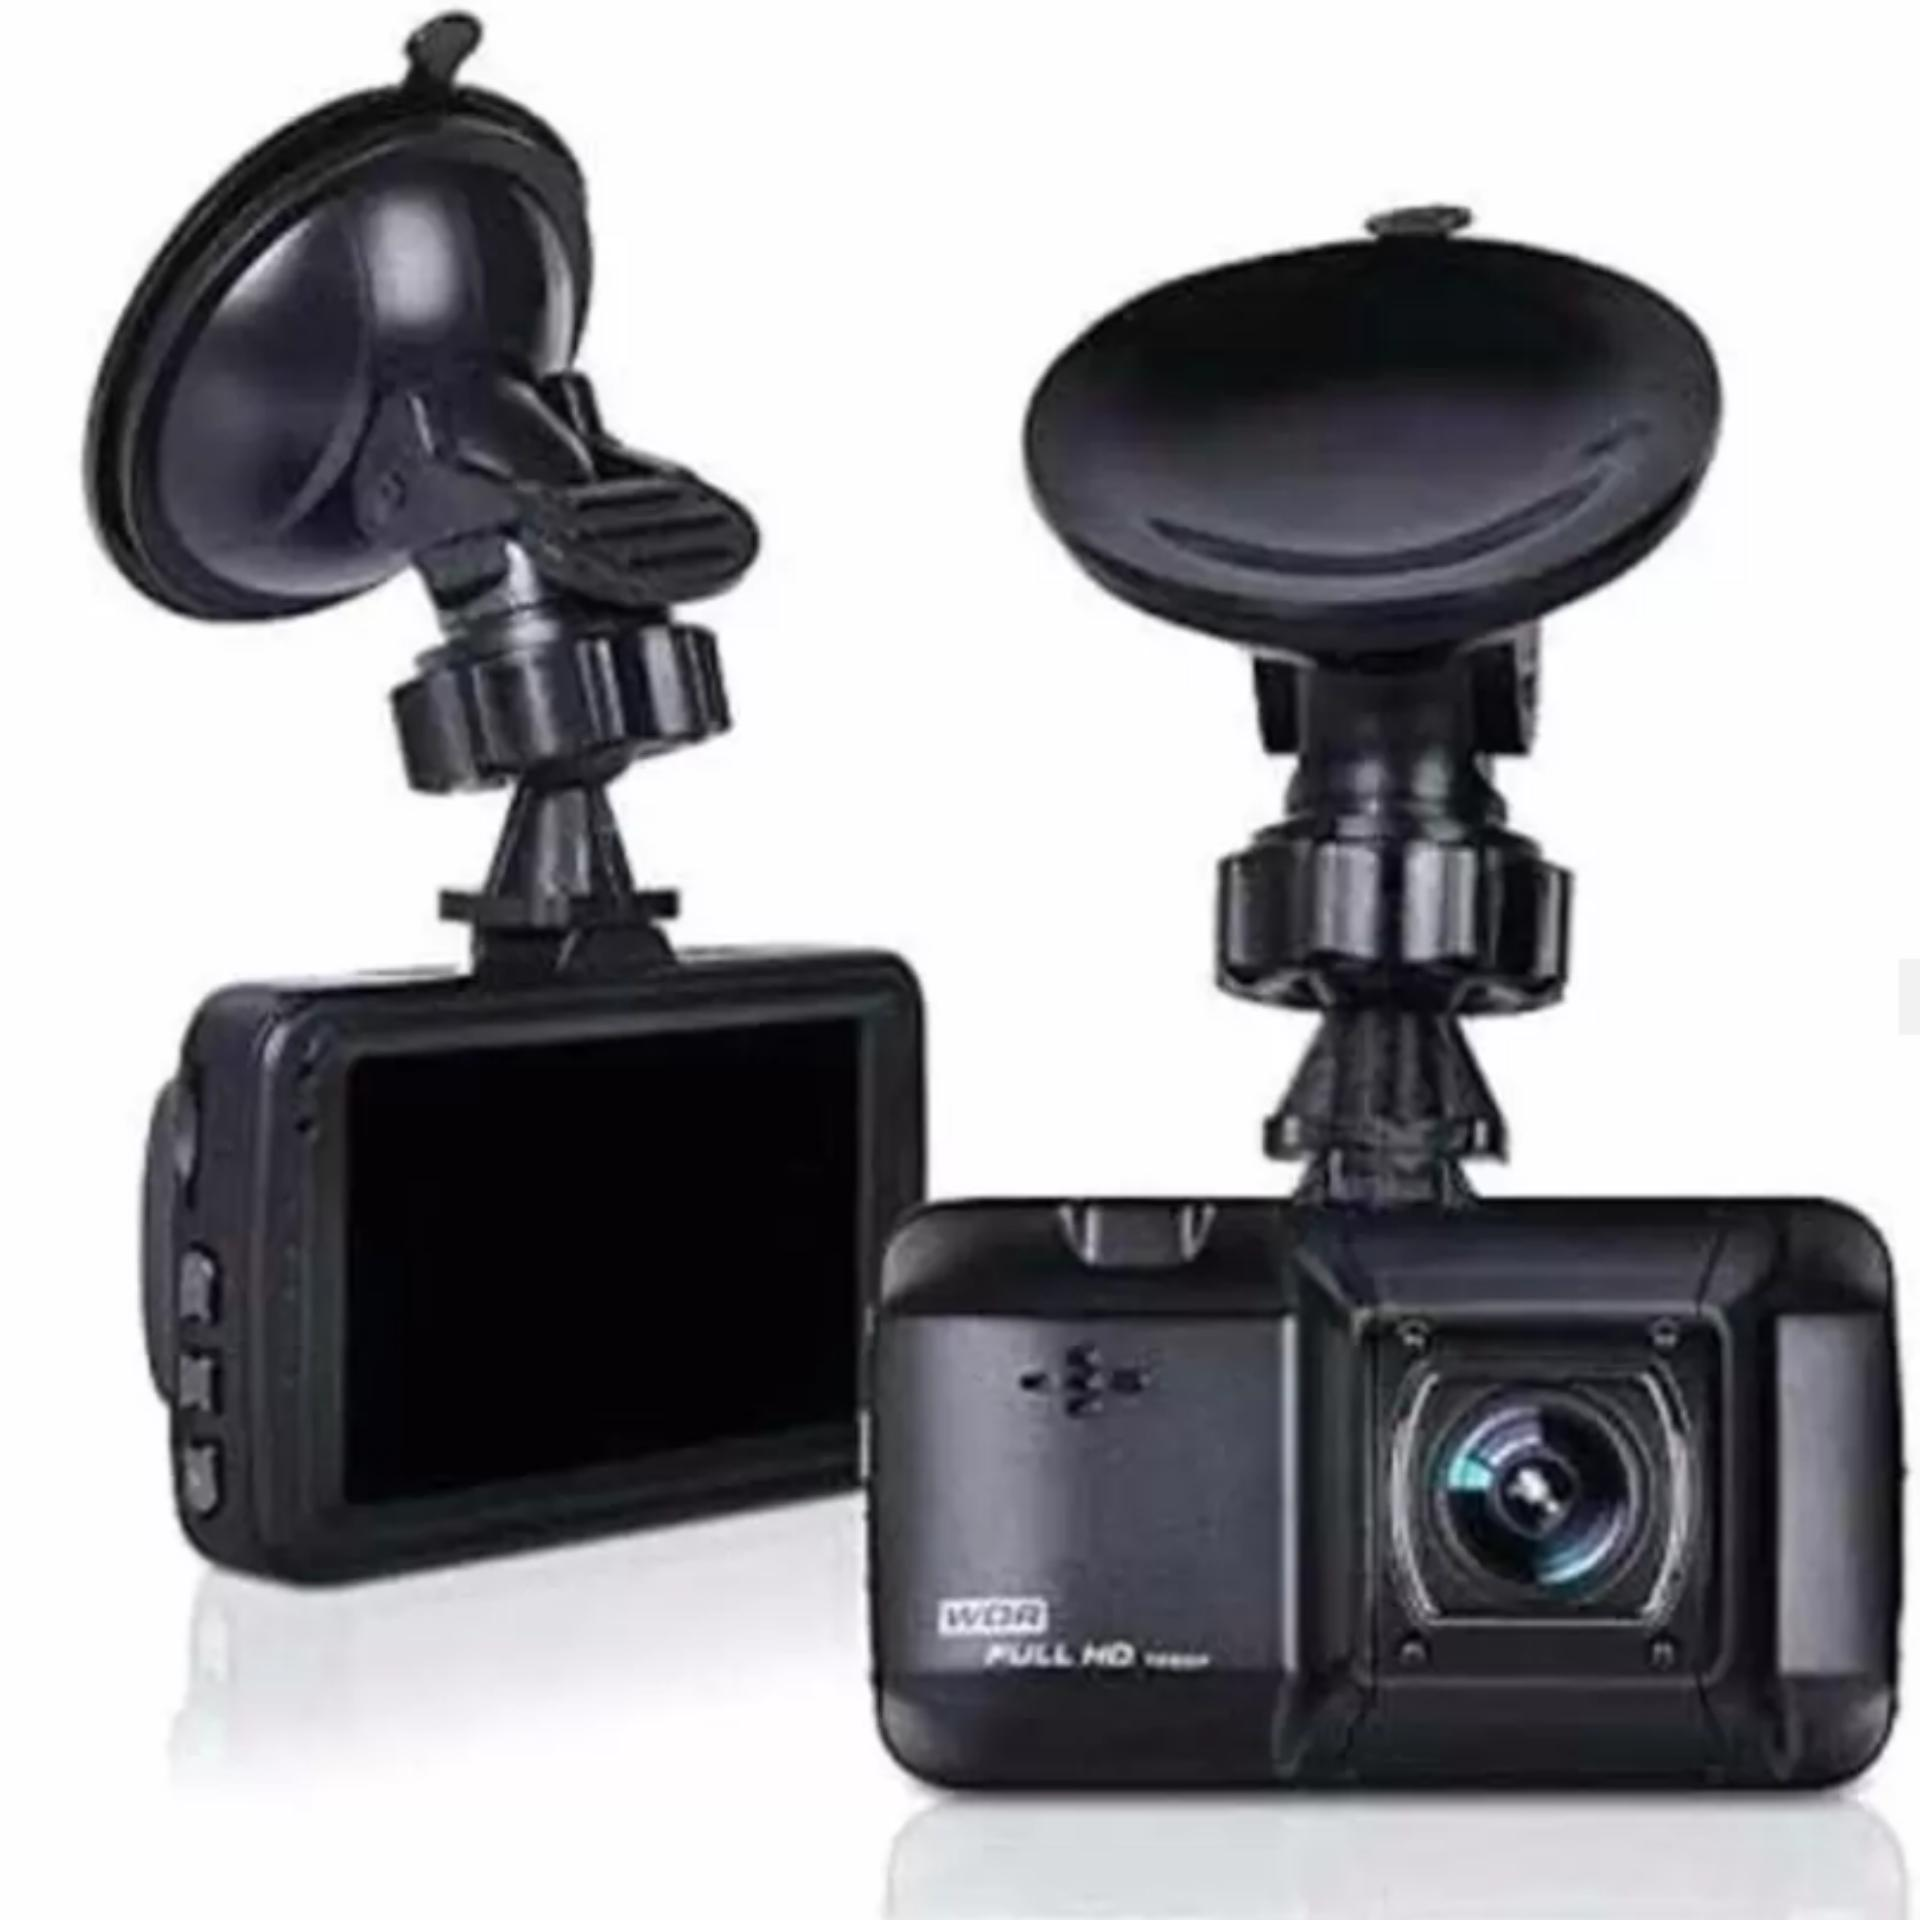 J-1101 Car DVR 1080P,HD Black Box Traveling Driving Data Recorder Camcorder Vehicle Camera Night Version Dashboard Dash Cam With 140 Degree Angle View